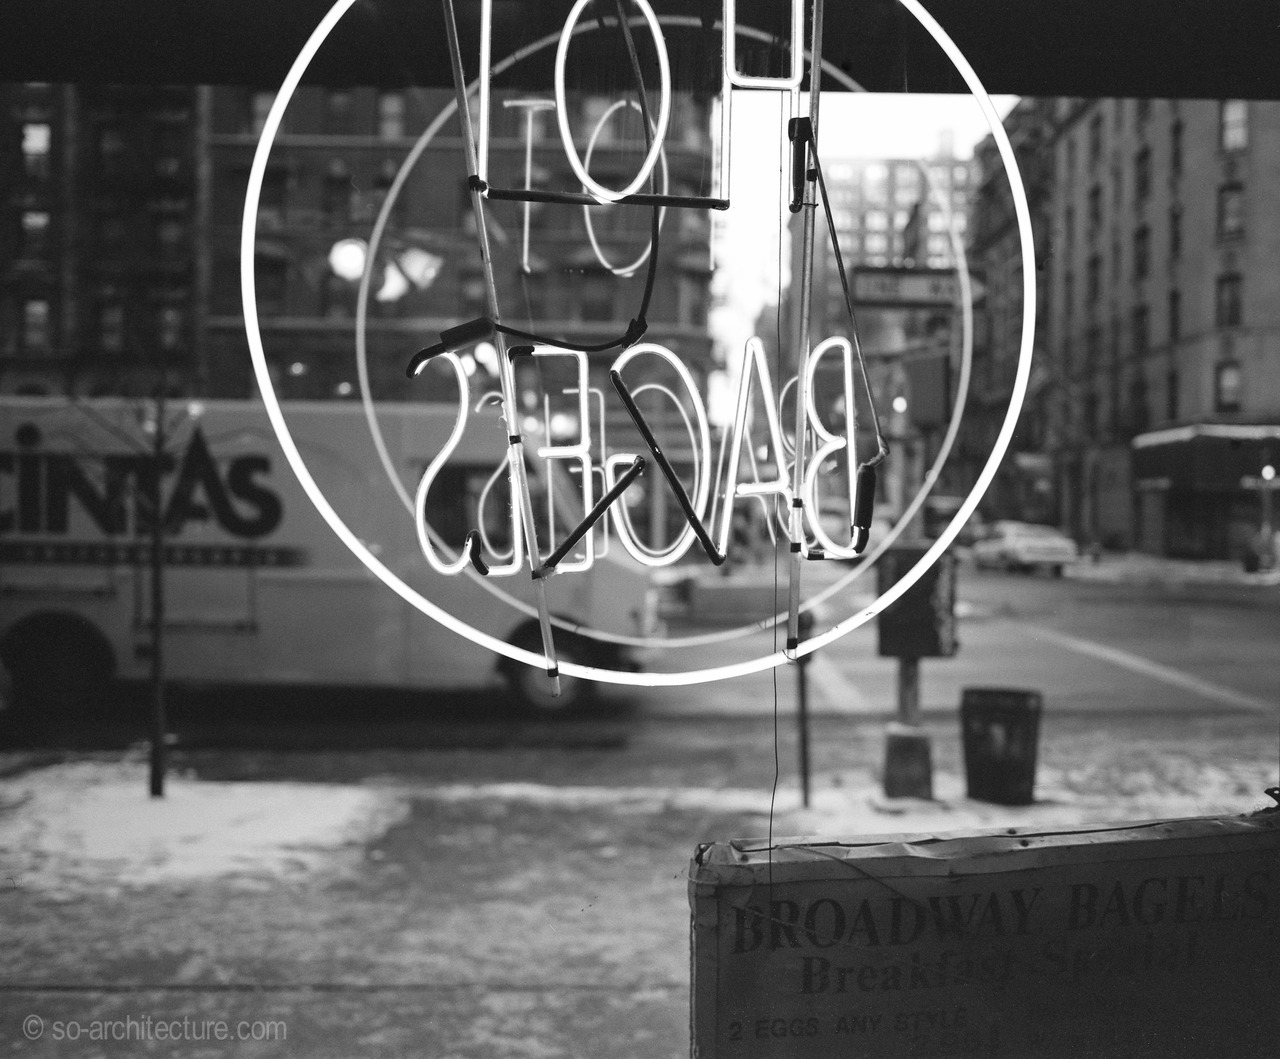 hot bagels- broadway new york city